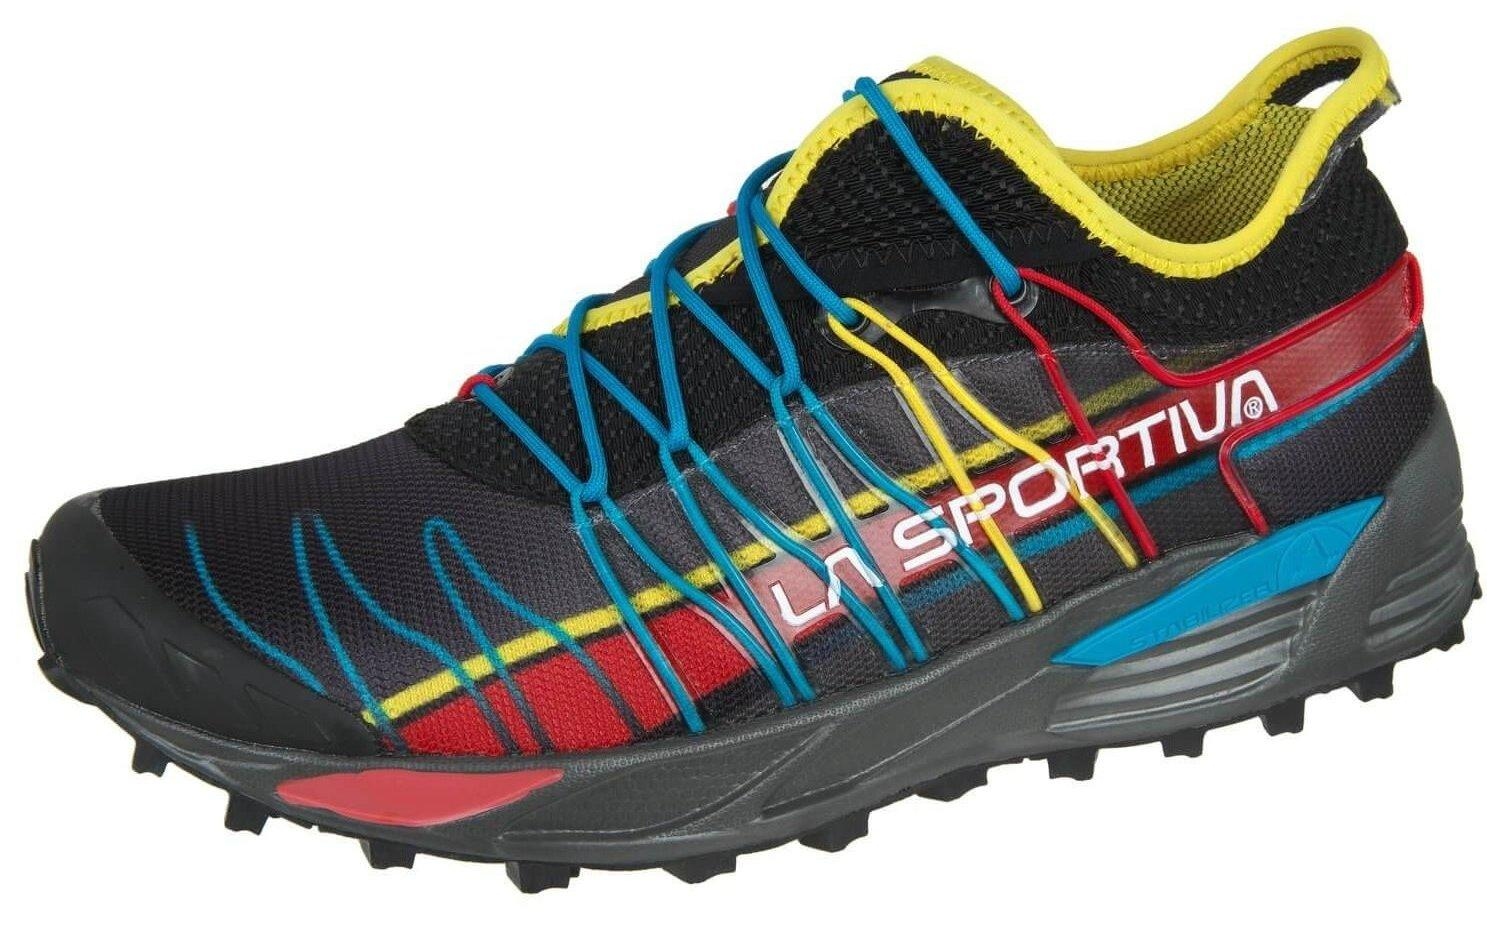 the La Sportiva Mutant offers trail runners a high-performance trail running shoe that has a lot of style